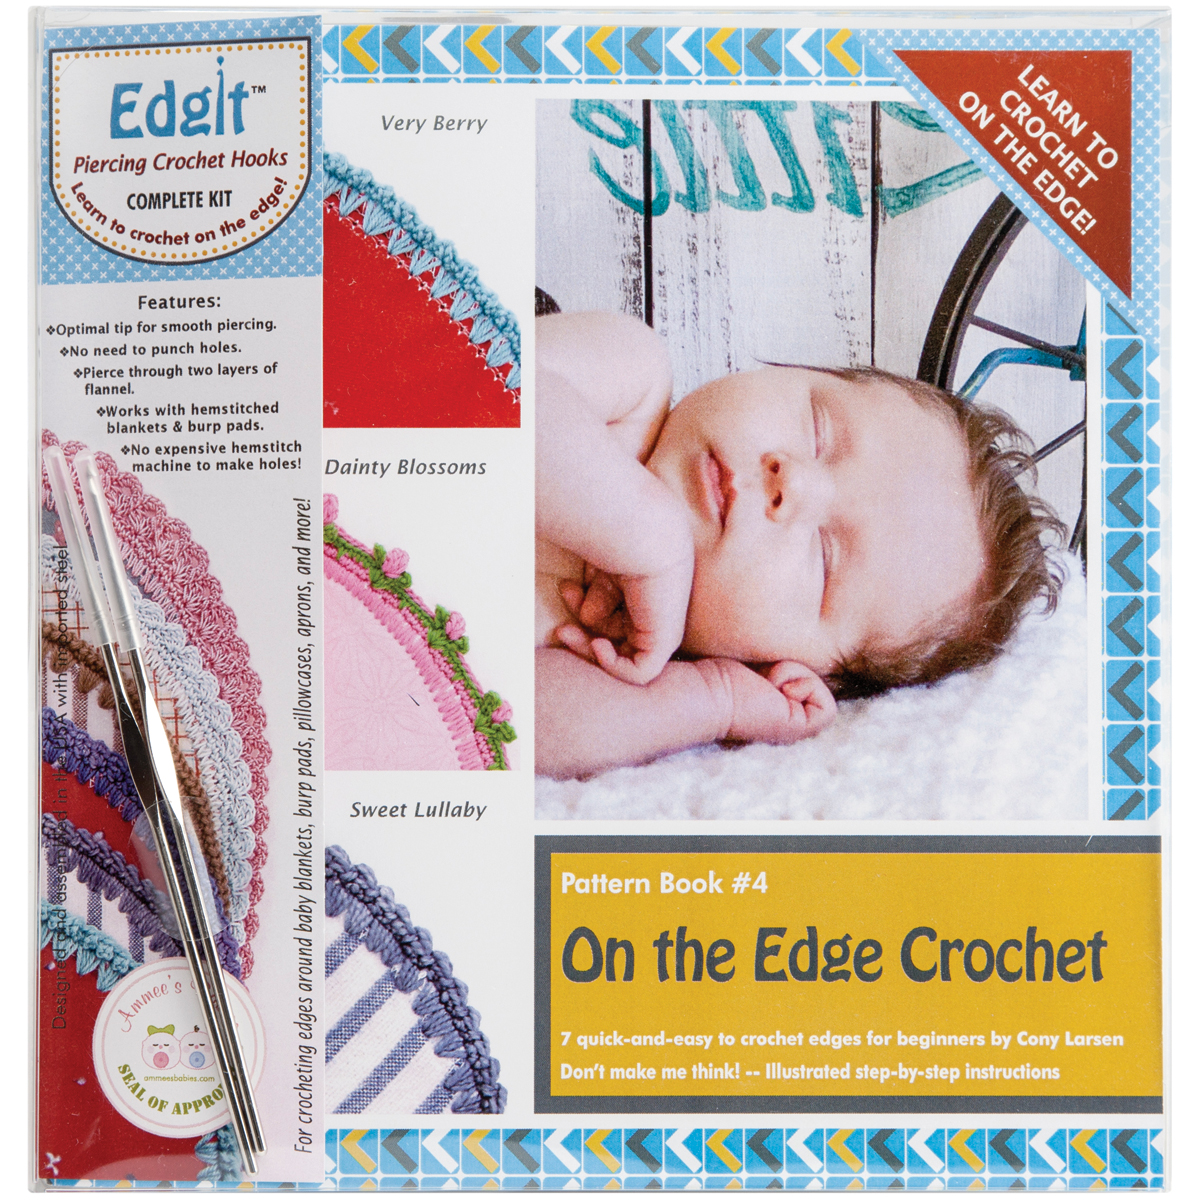 Edgit Piercing Crochet Hook, Book & Burp Cloth Kit-